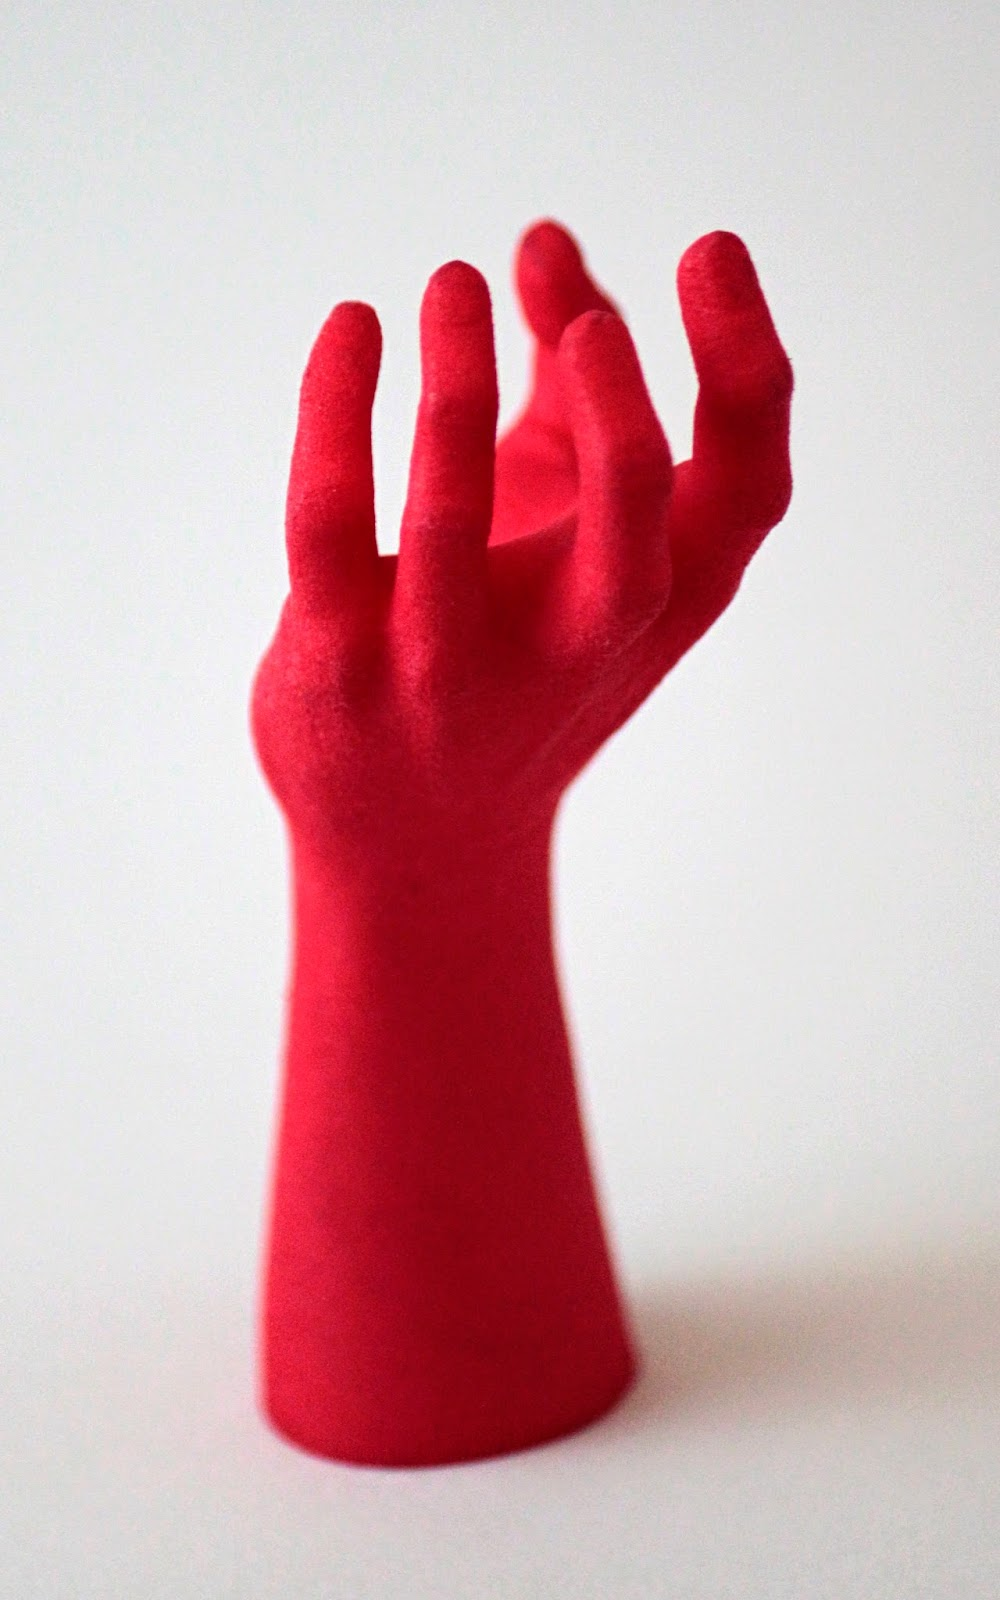 3D Printed zombie hands